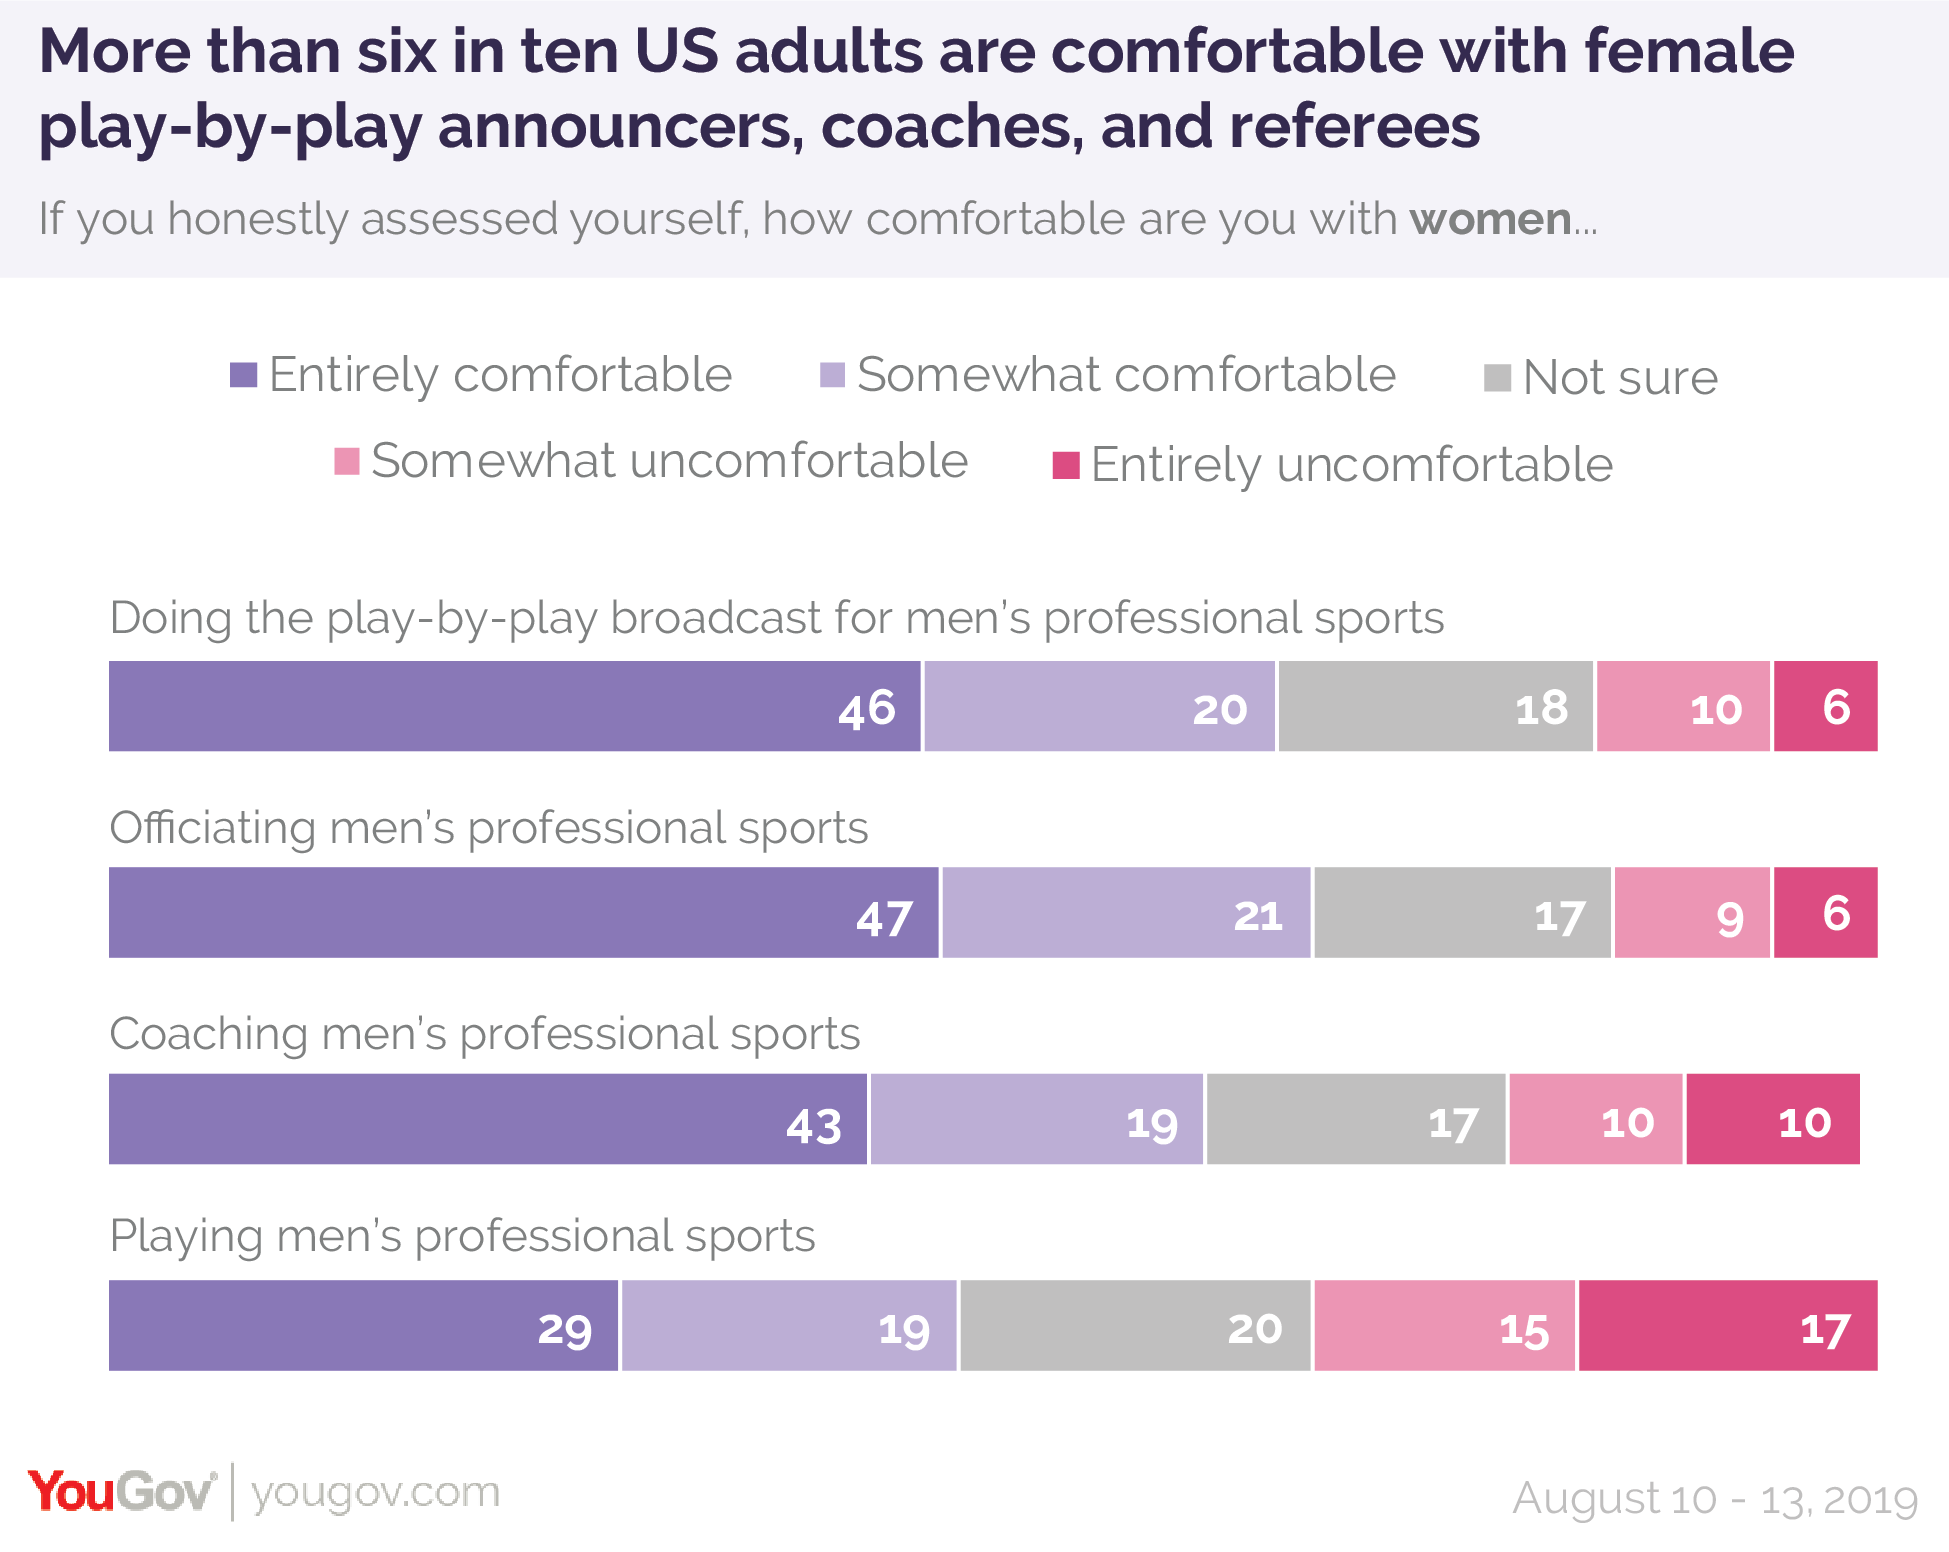 More than six in ten US adults are comfortable with female play-by-play announcers, coaches, and referees